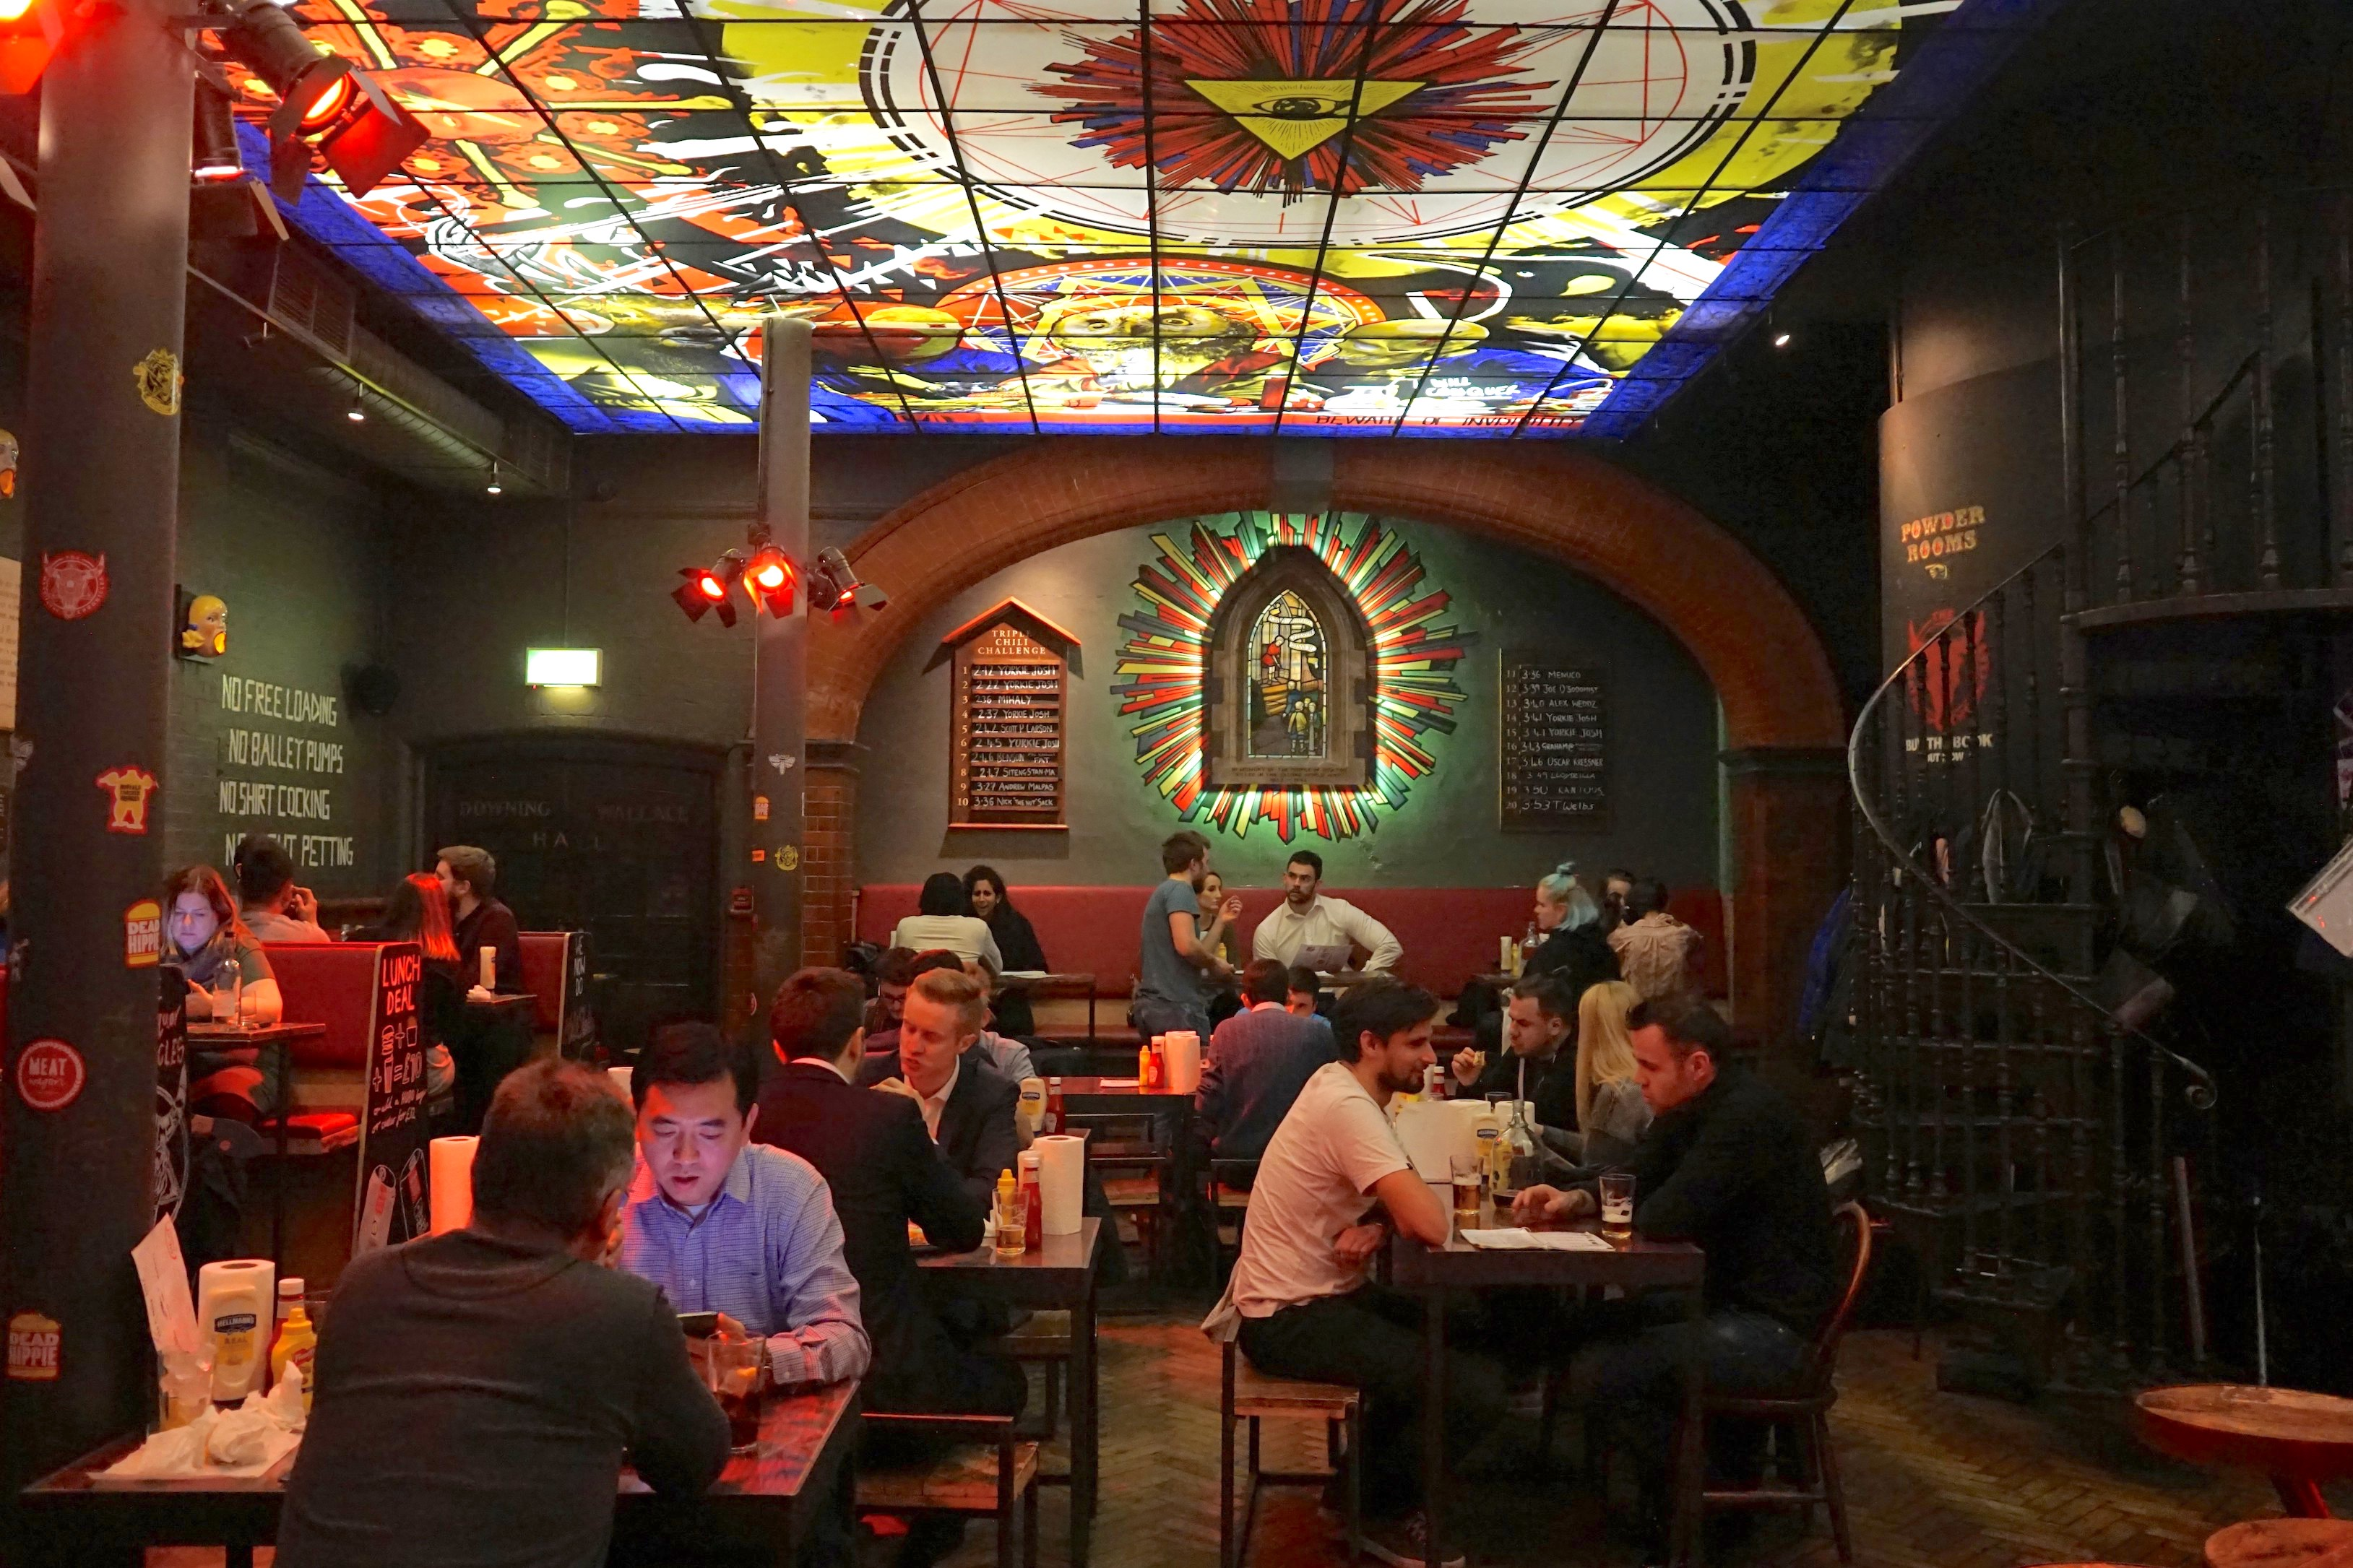 The interiors of MEATMission in Shoreditch with people inside and stained windows.